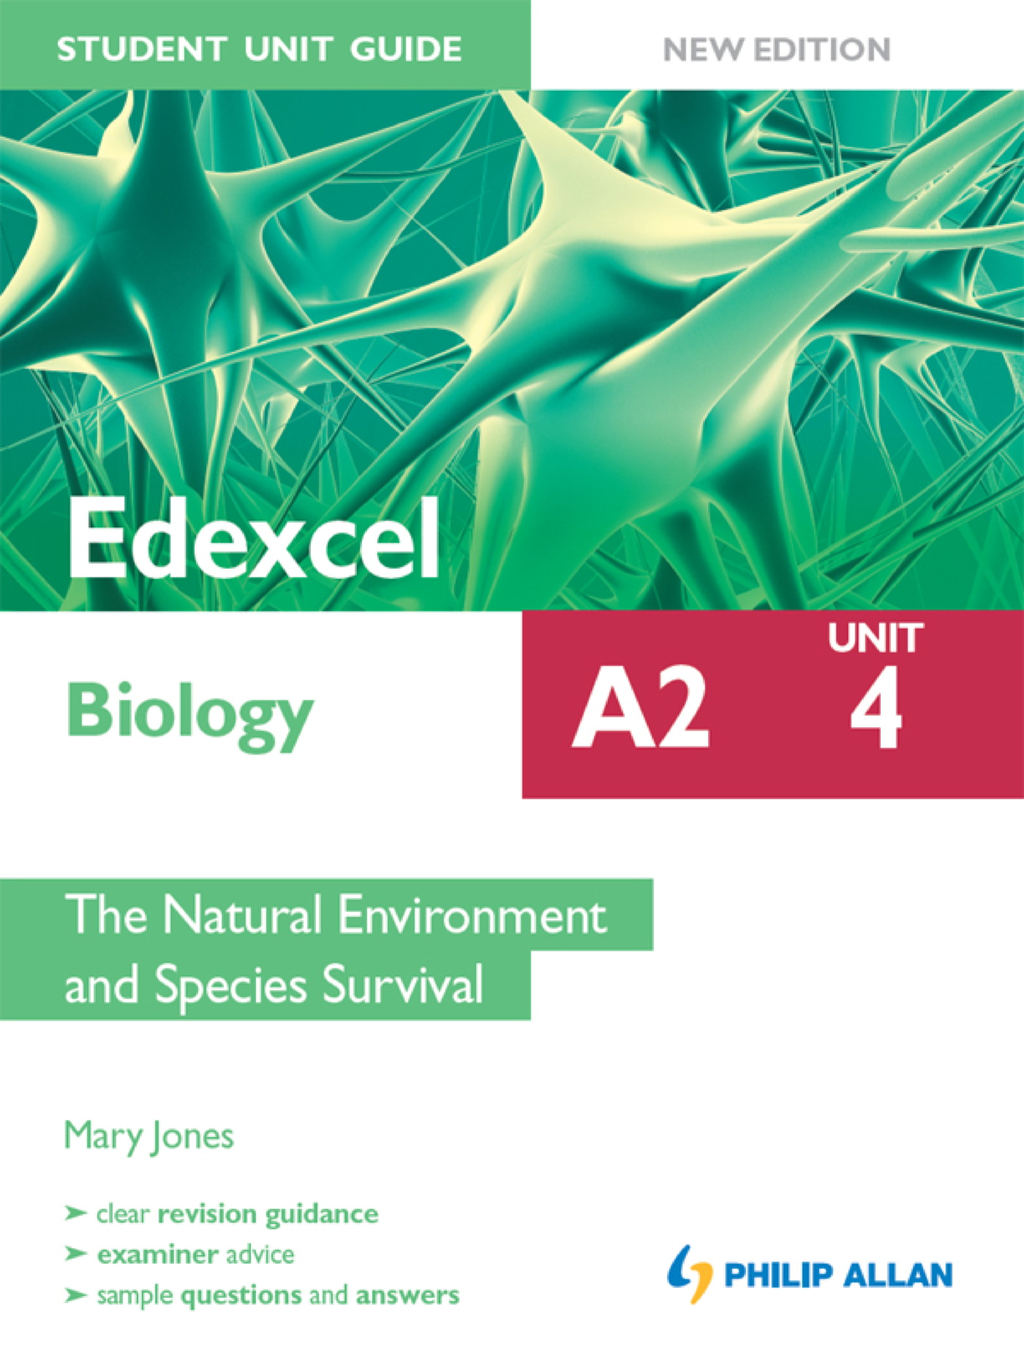 Edexcel A2 Biology Student Unit Guide New Edition: Unit 4 The Natural Environment and Species Survival